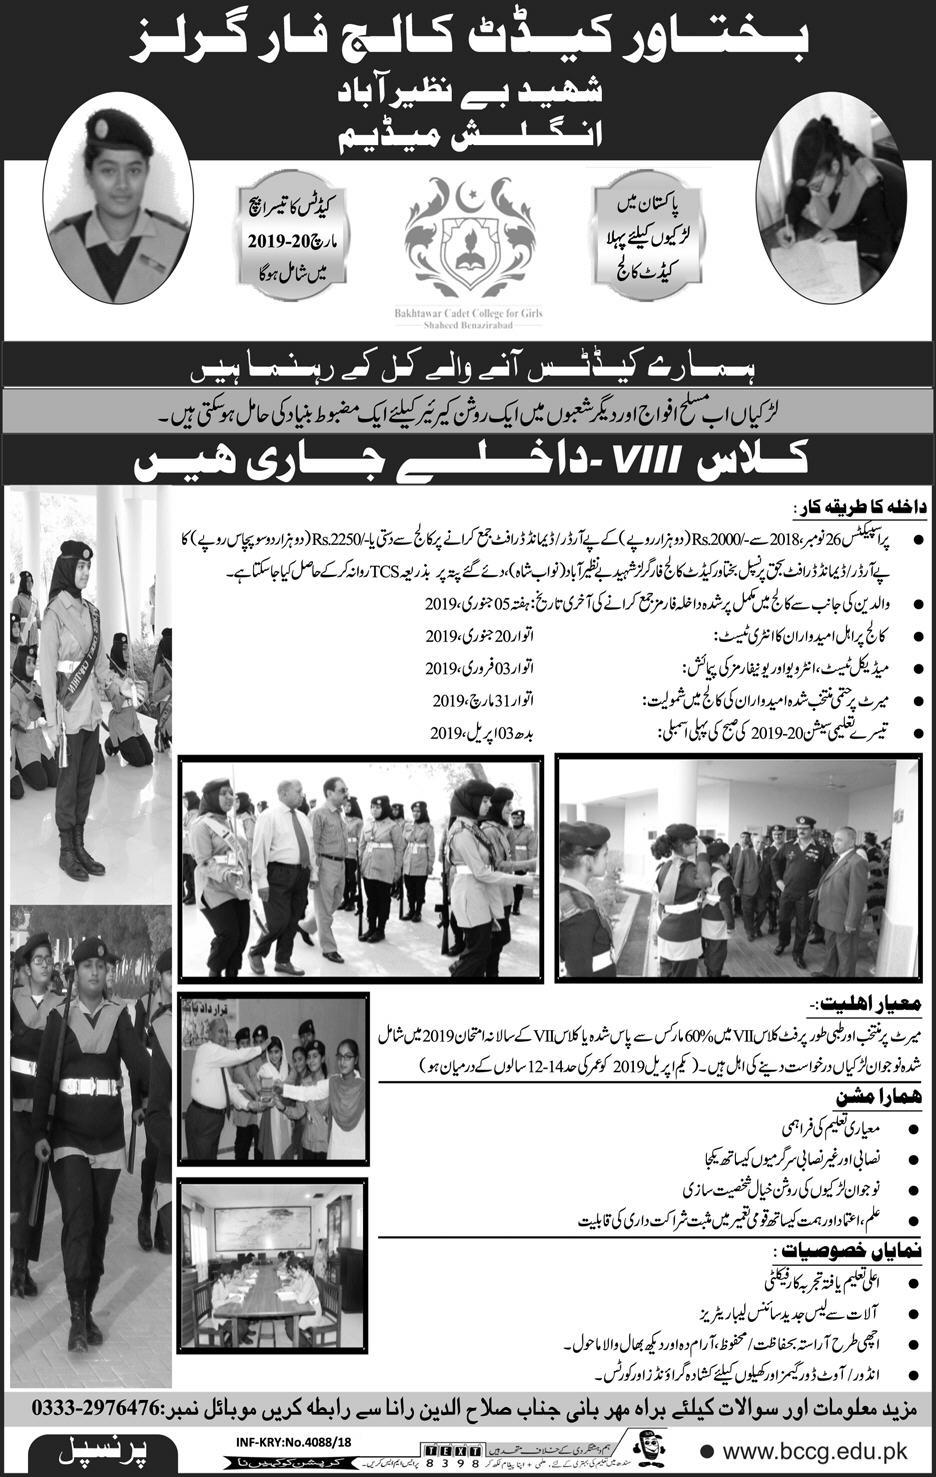 Bakhtawar Cadet College For Girls Admission 2019 Application Form